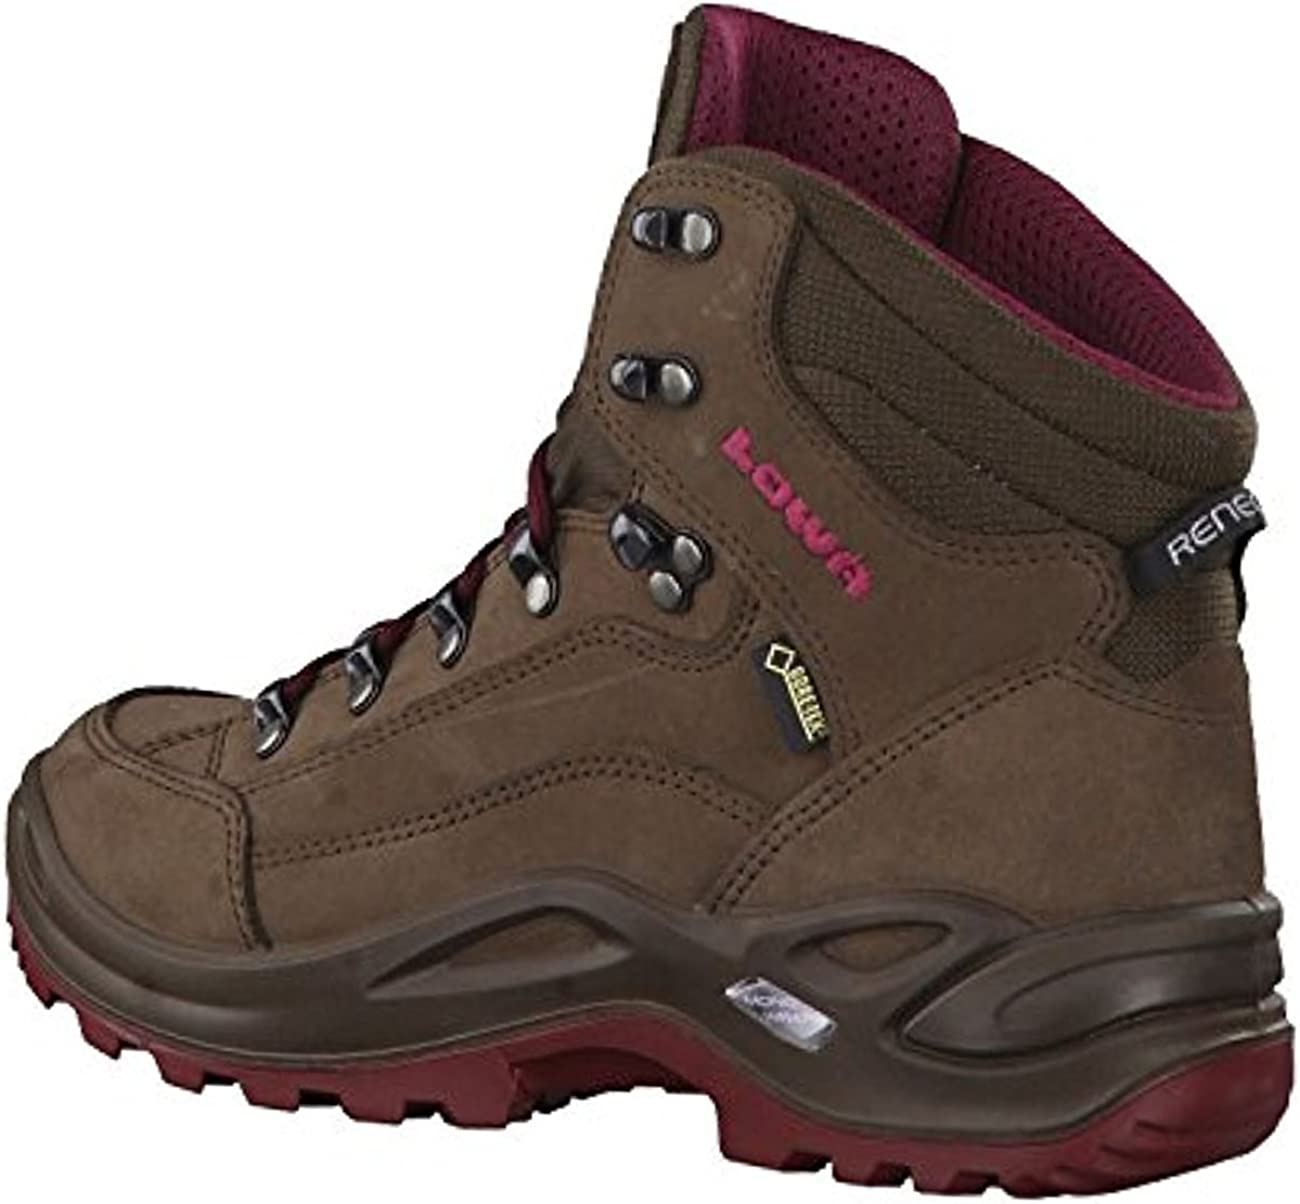 Womens Espresso//Berry Lowa Renegade GTX Mid Hiking Boot Womens